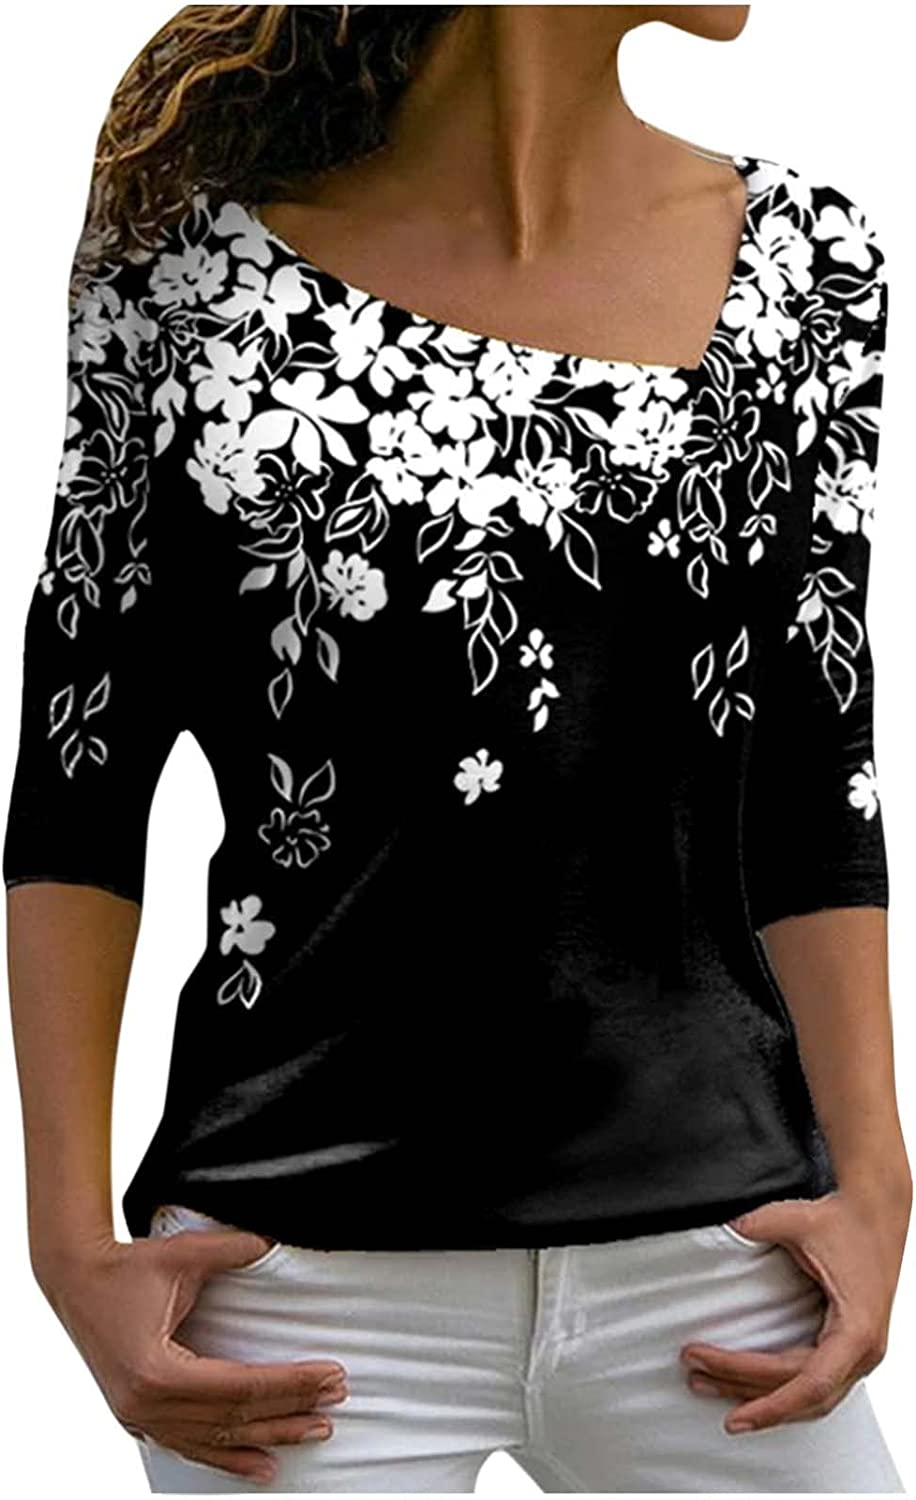 Pullover for Womens Long Ranking TOP17 Sleeve Casual Tsh Irregular Tops Shipping included Neck V